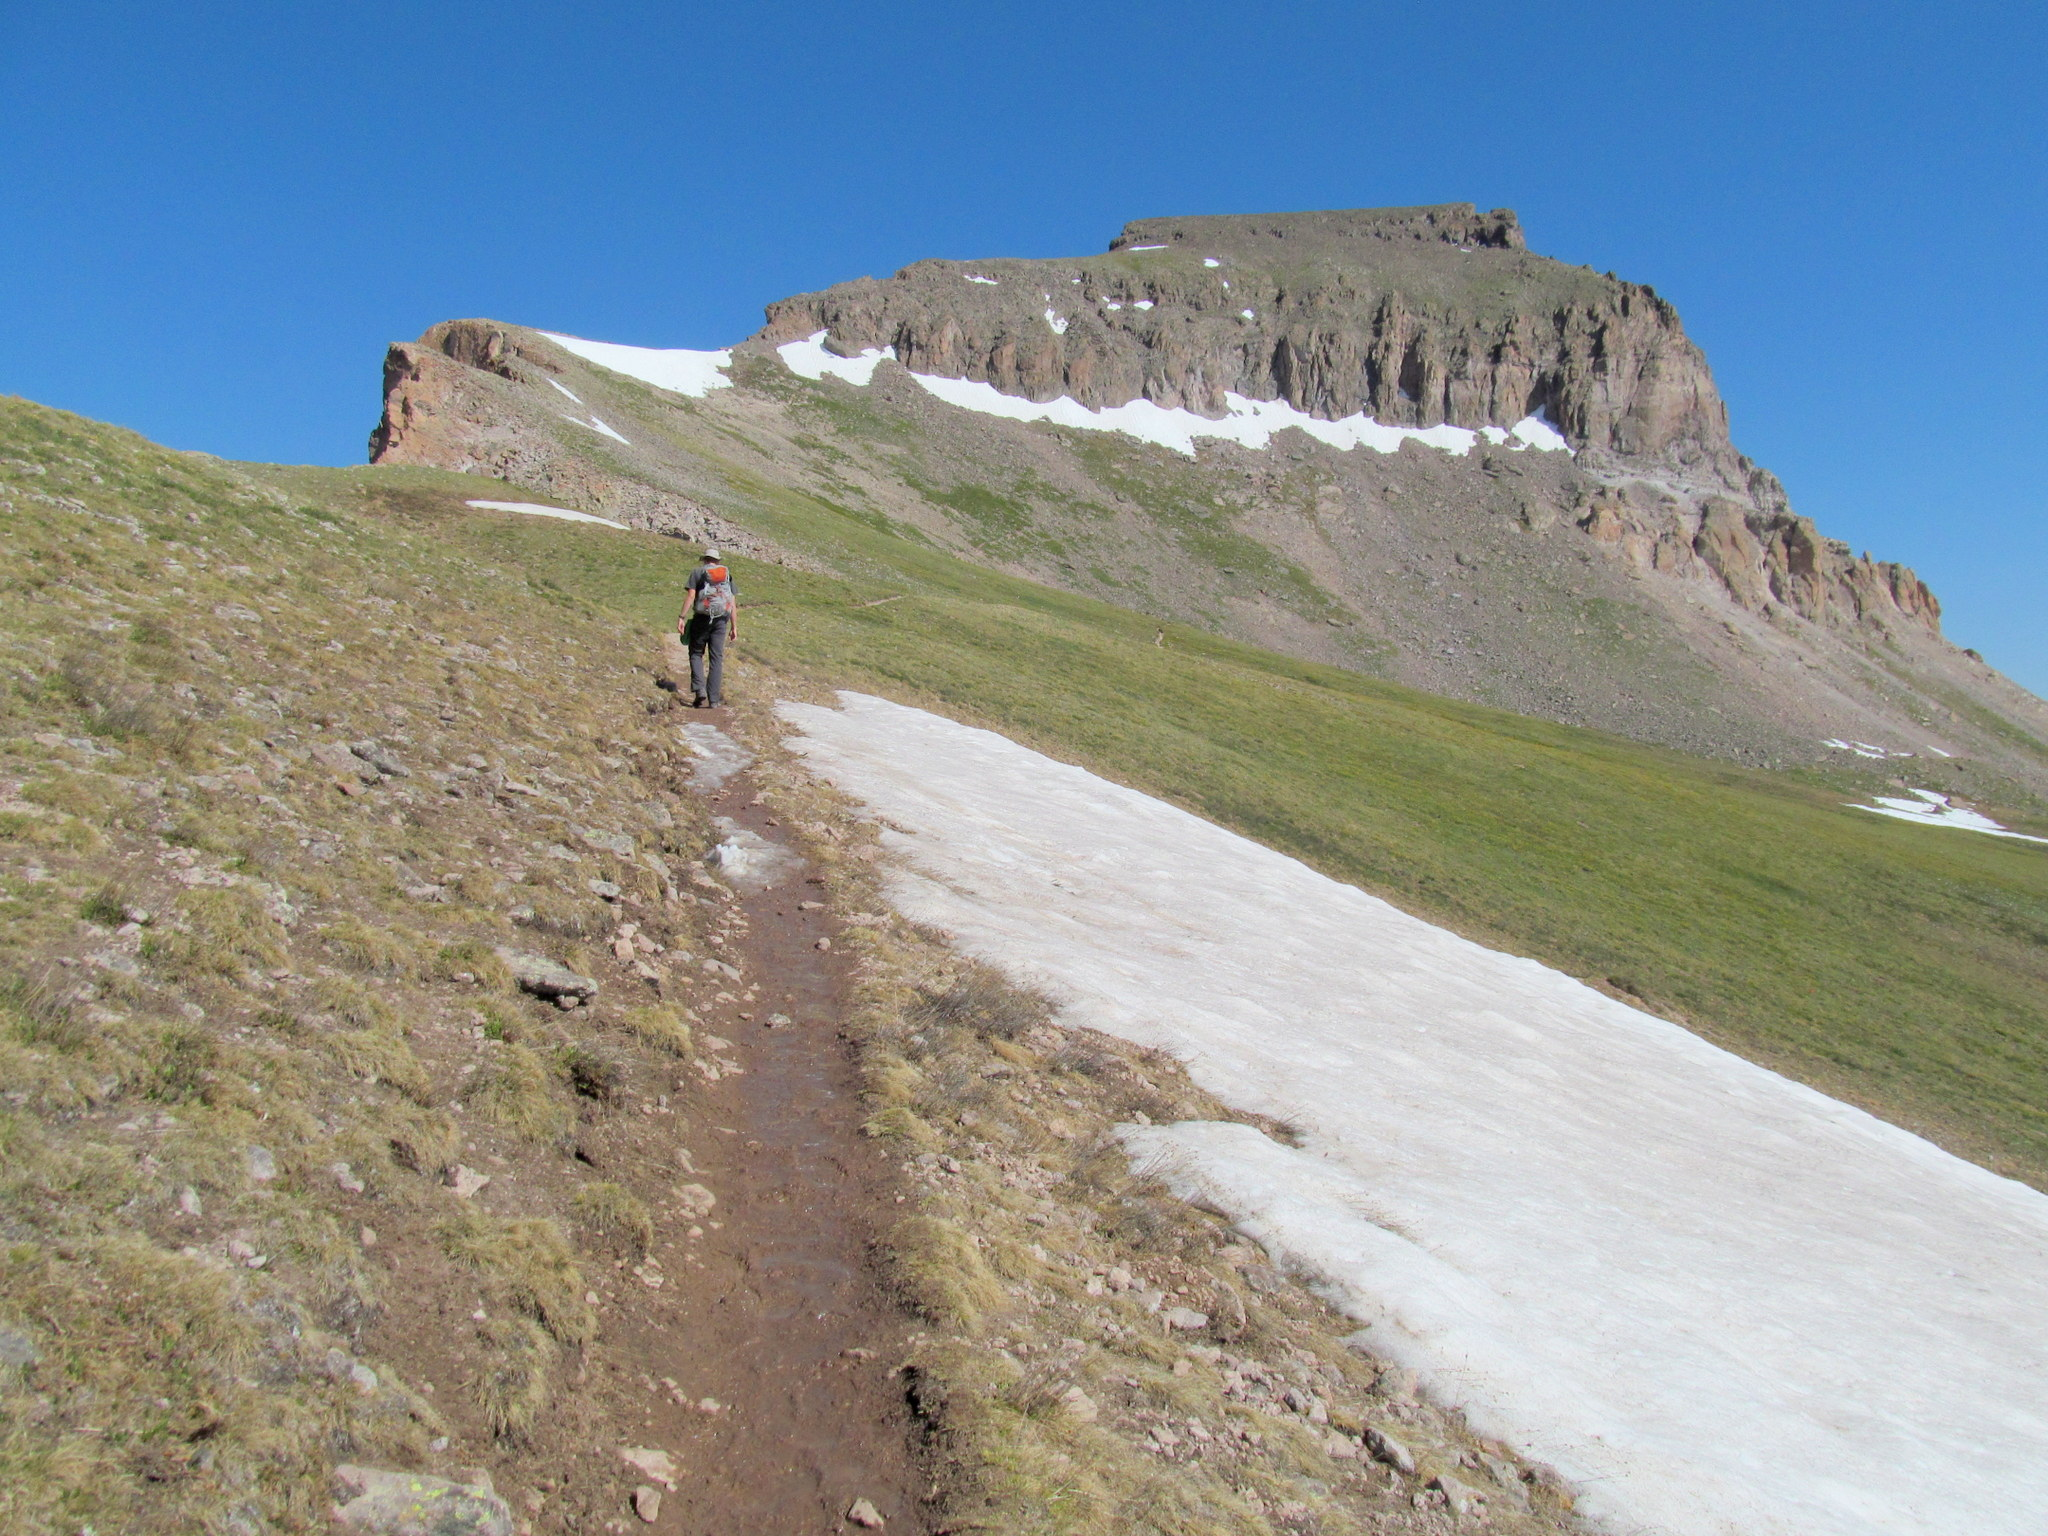 Photo: Approaching the summit block